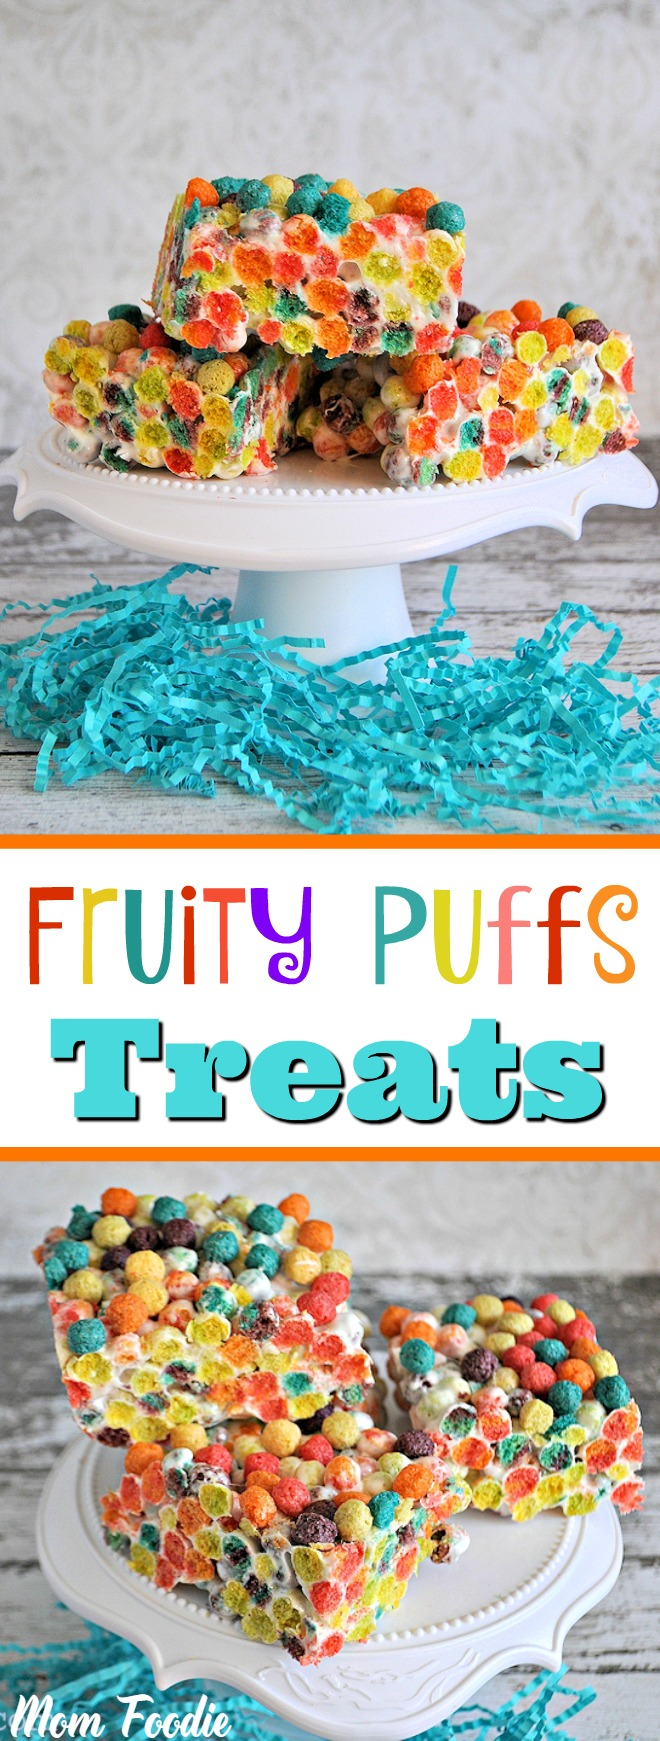 Fruity Puffs Treats Recipe